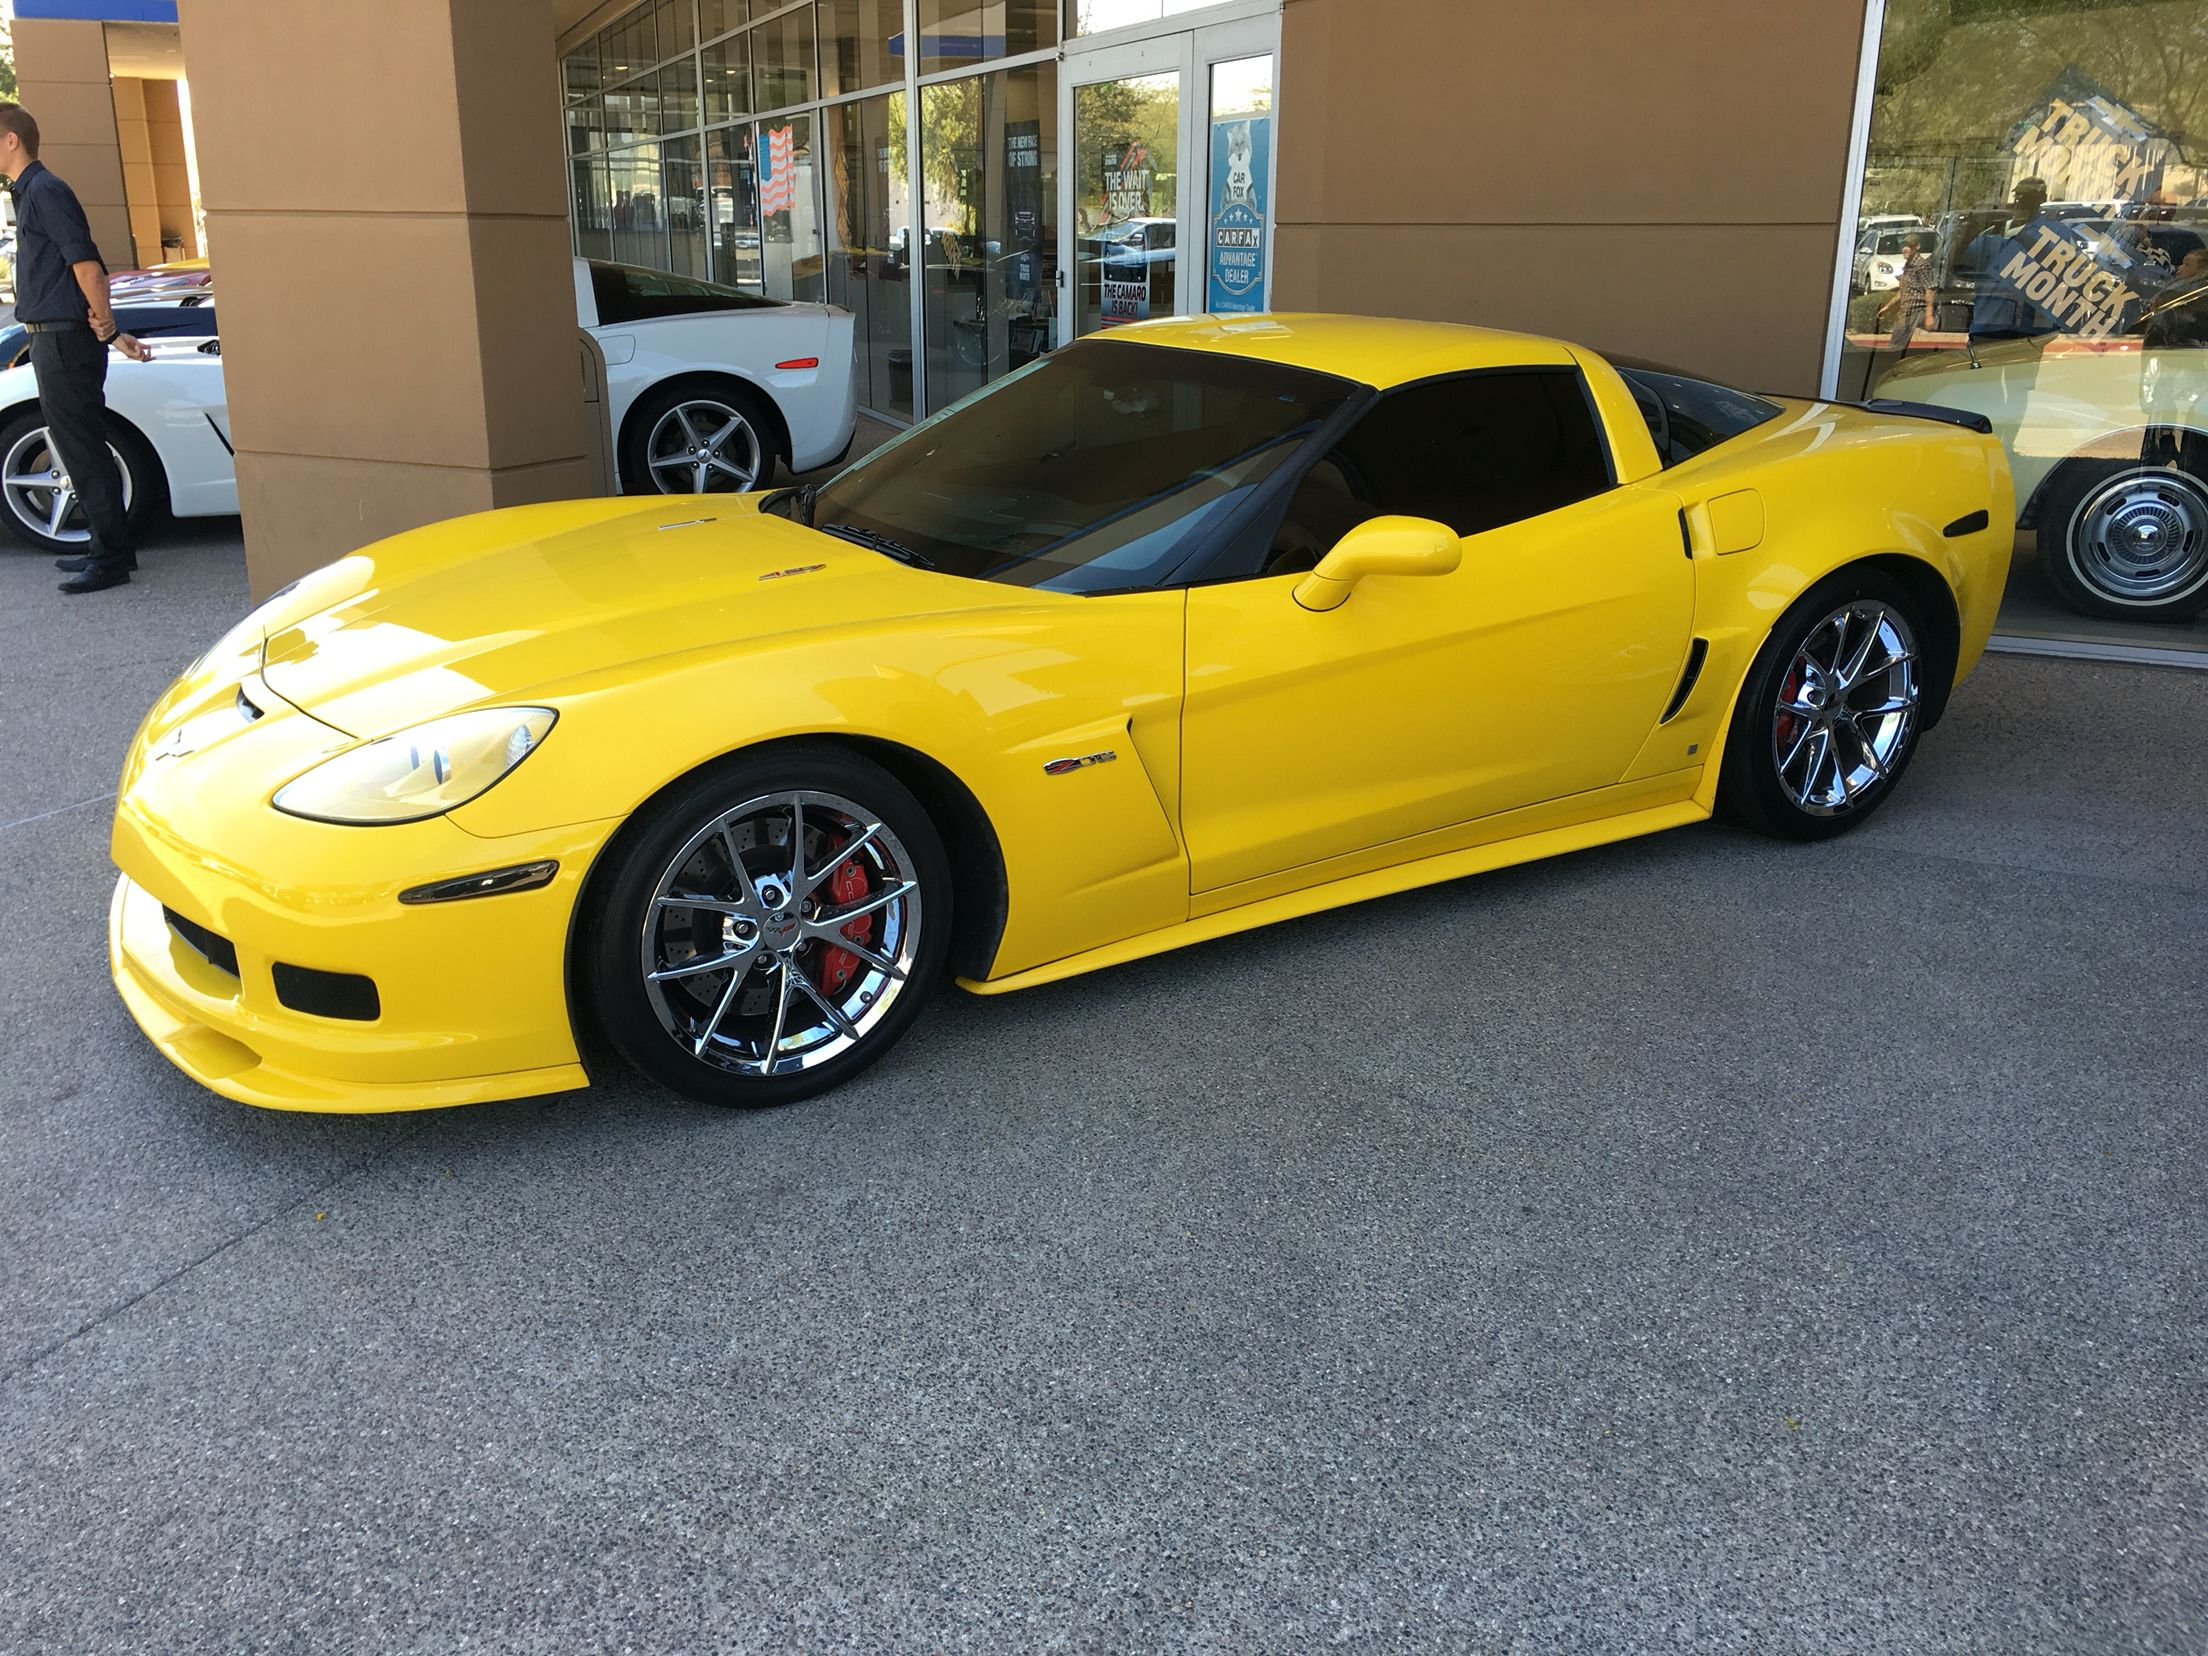 Yellow Corvette Z06 2009 My Dream Car That I Worked Hard For But